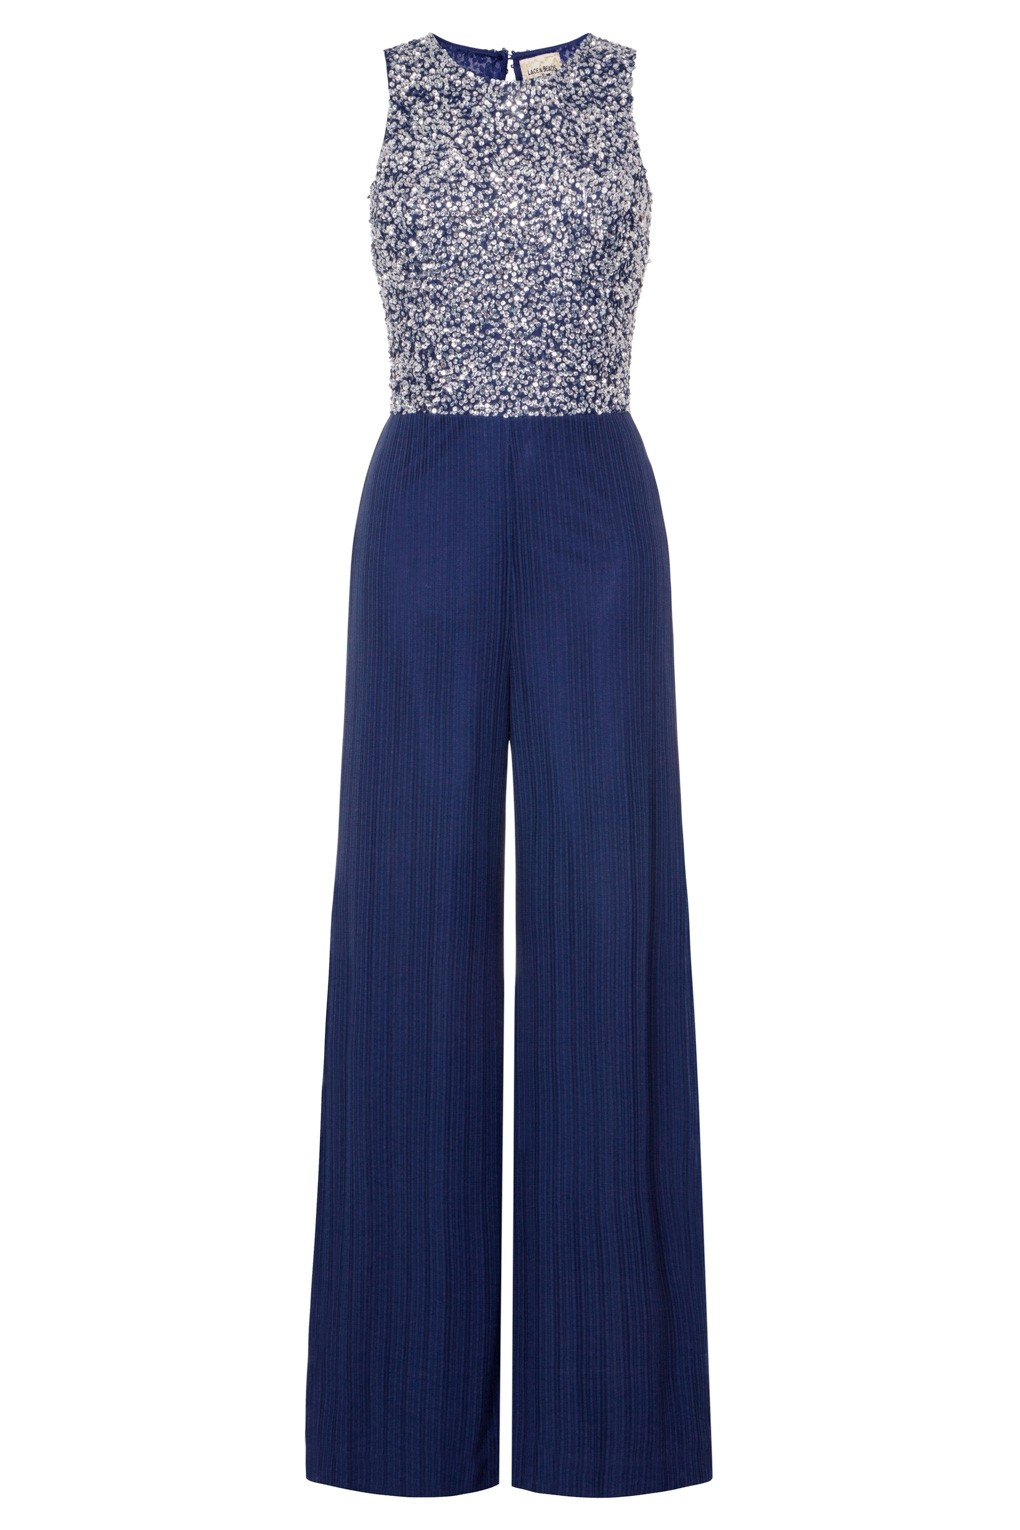 Lace Amp Beads Picasso Embellished Navy Jumpsuit Lace